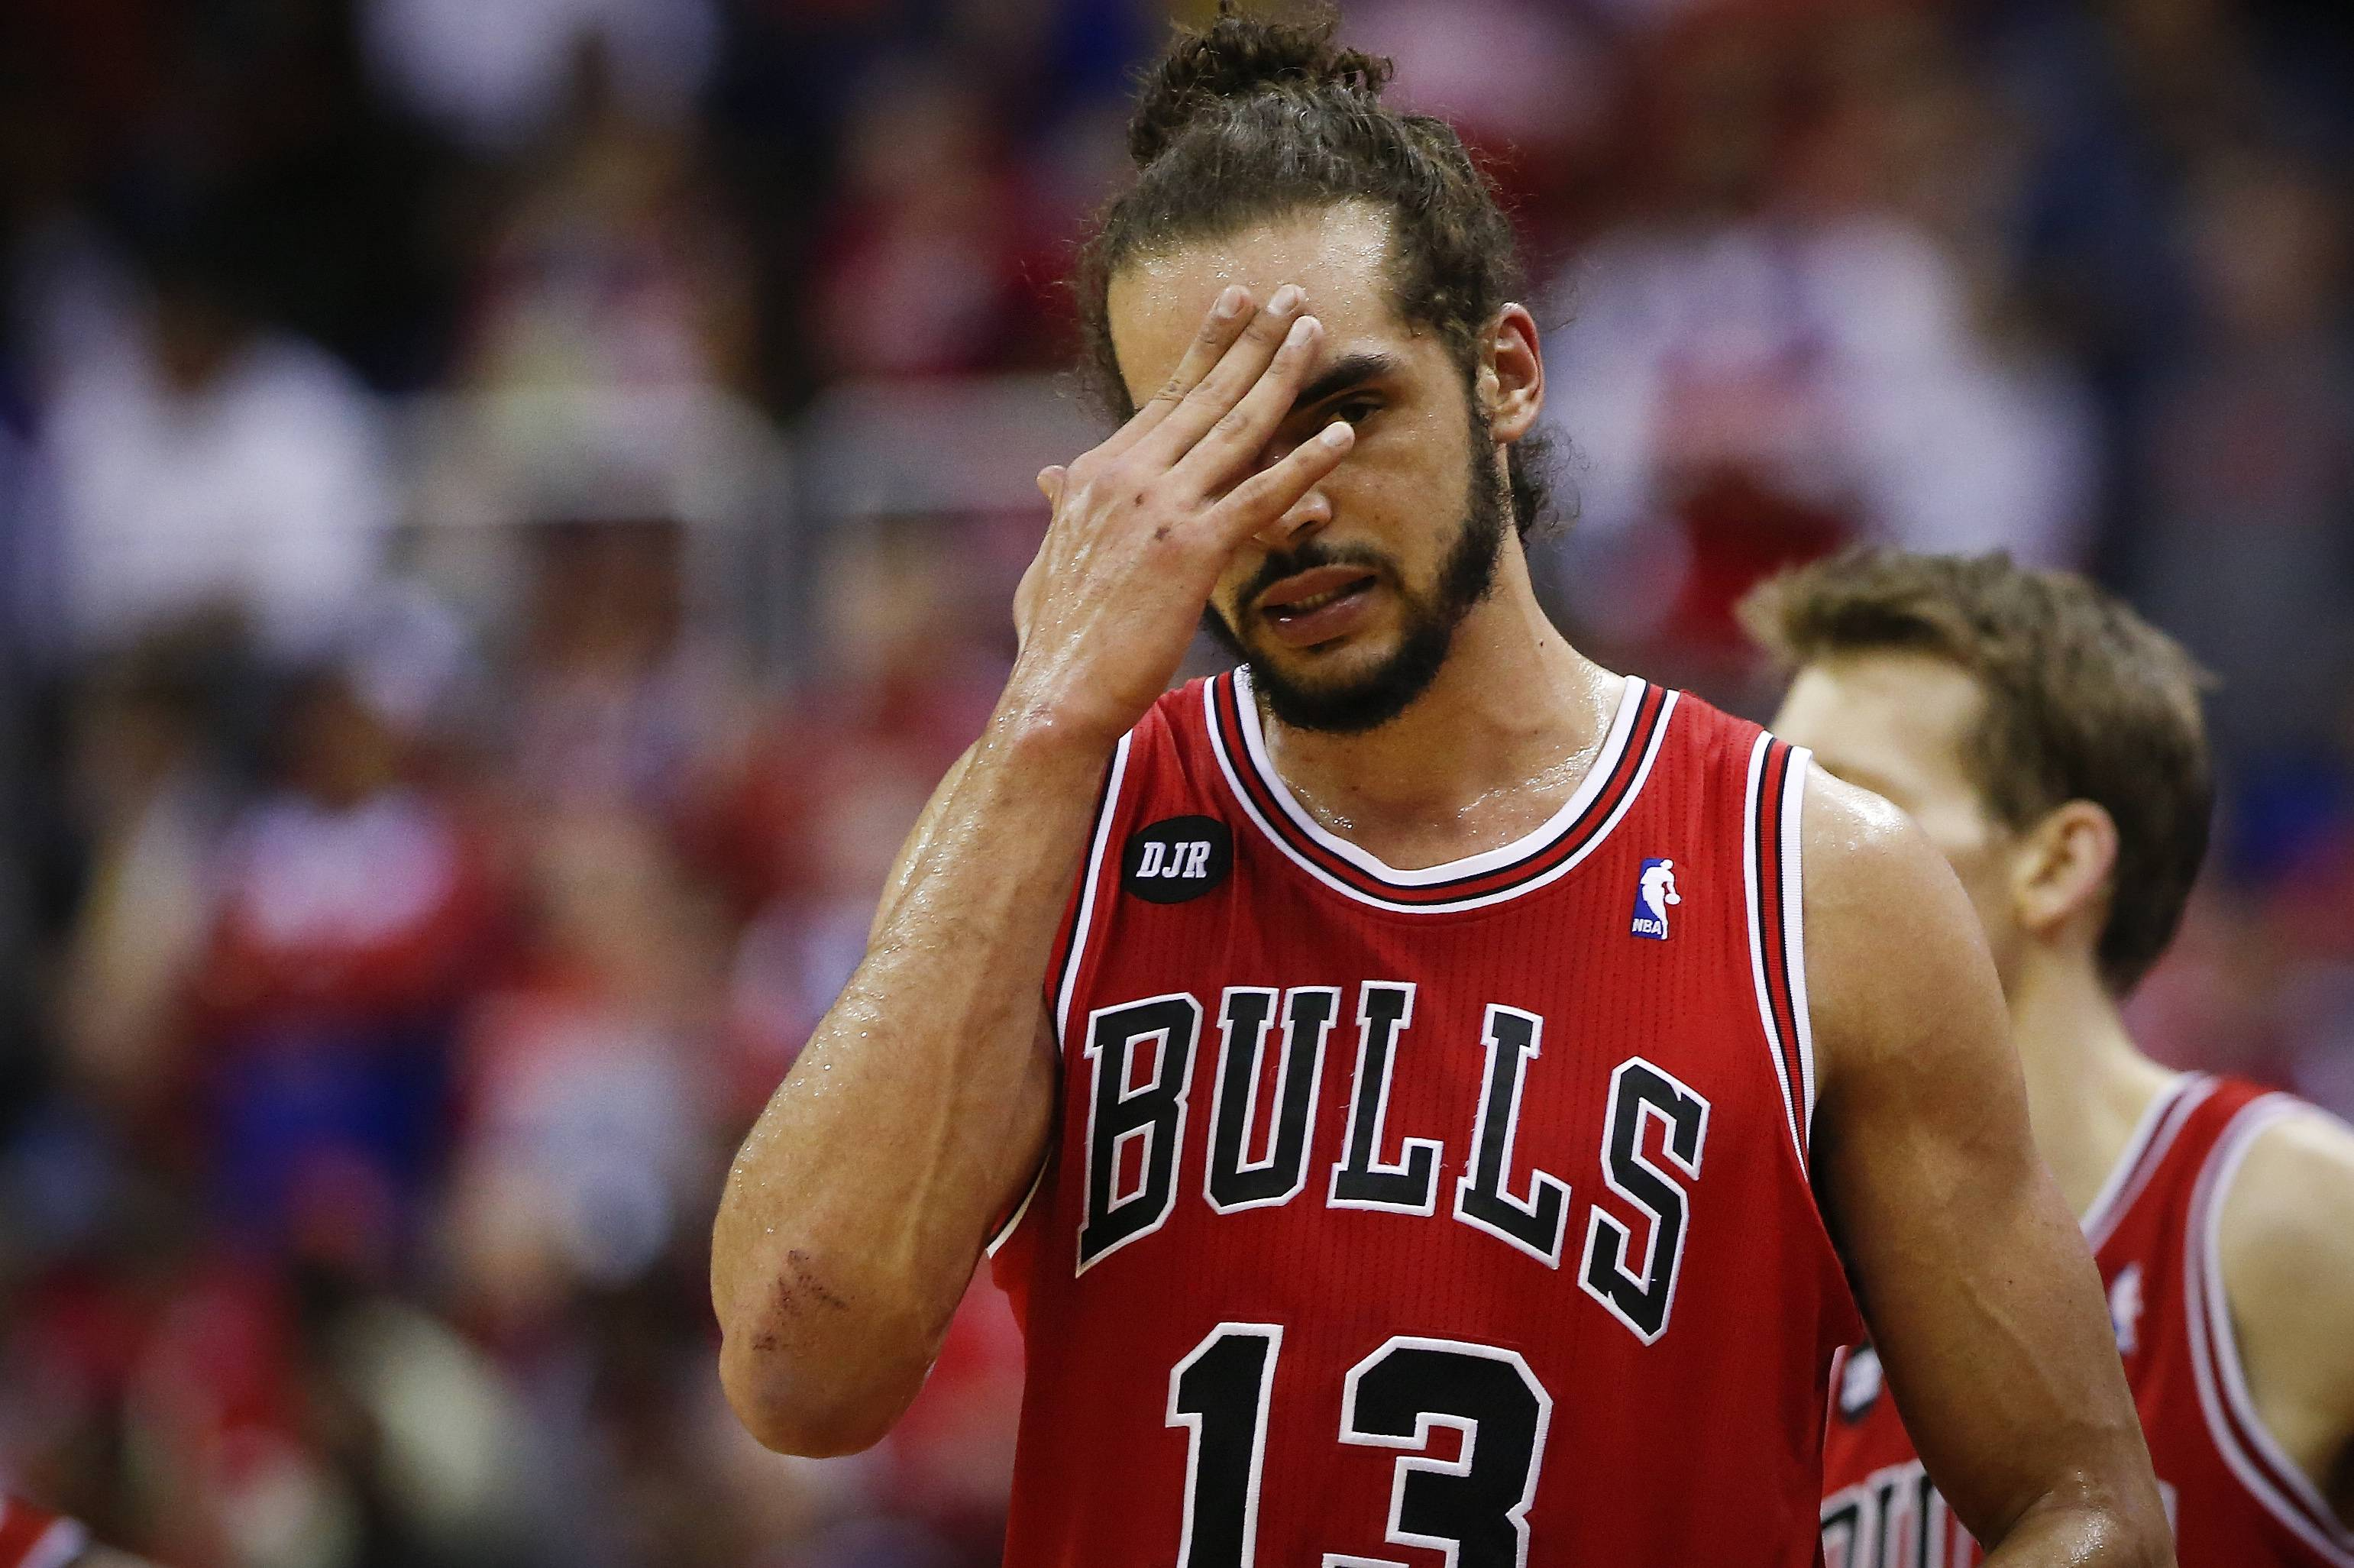 Chicago Bulls center Joakim Noah (13) holds his hand to his head during a break in the action against the Washington Wizards during the first half of Game 4 of an opening-round NBA basketball playoff series in Washington, Sunday, April 27, 2014.